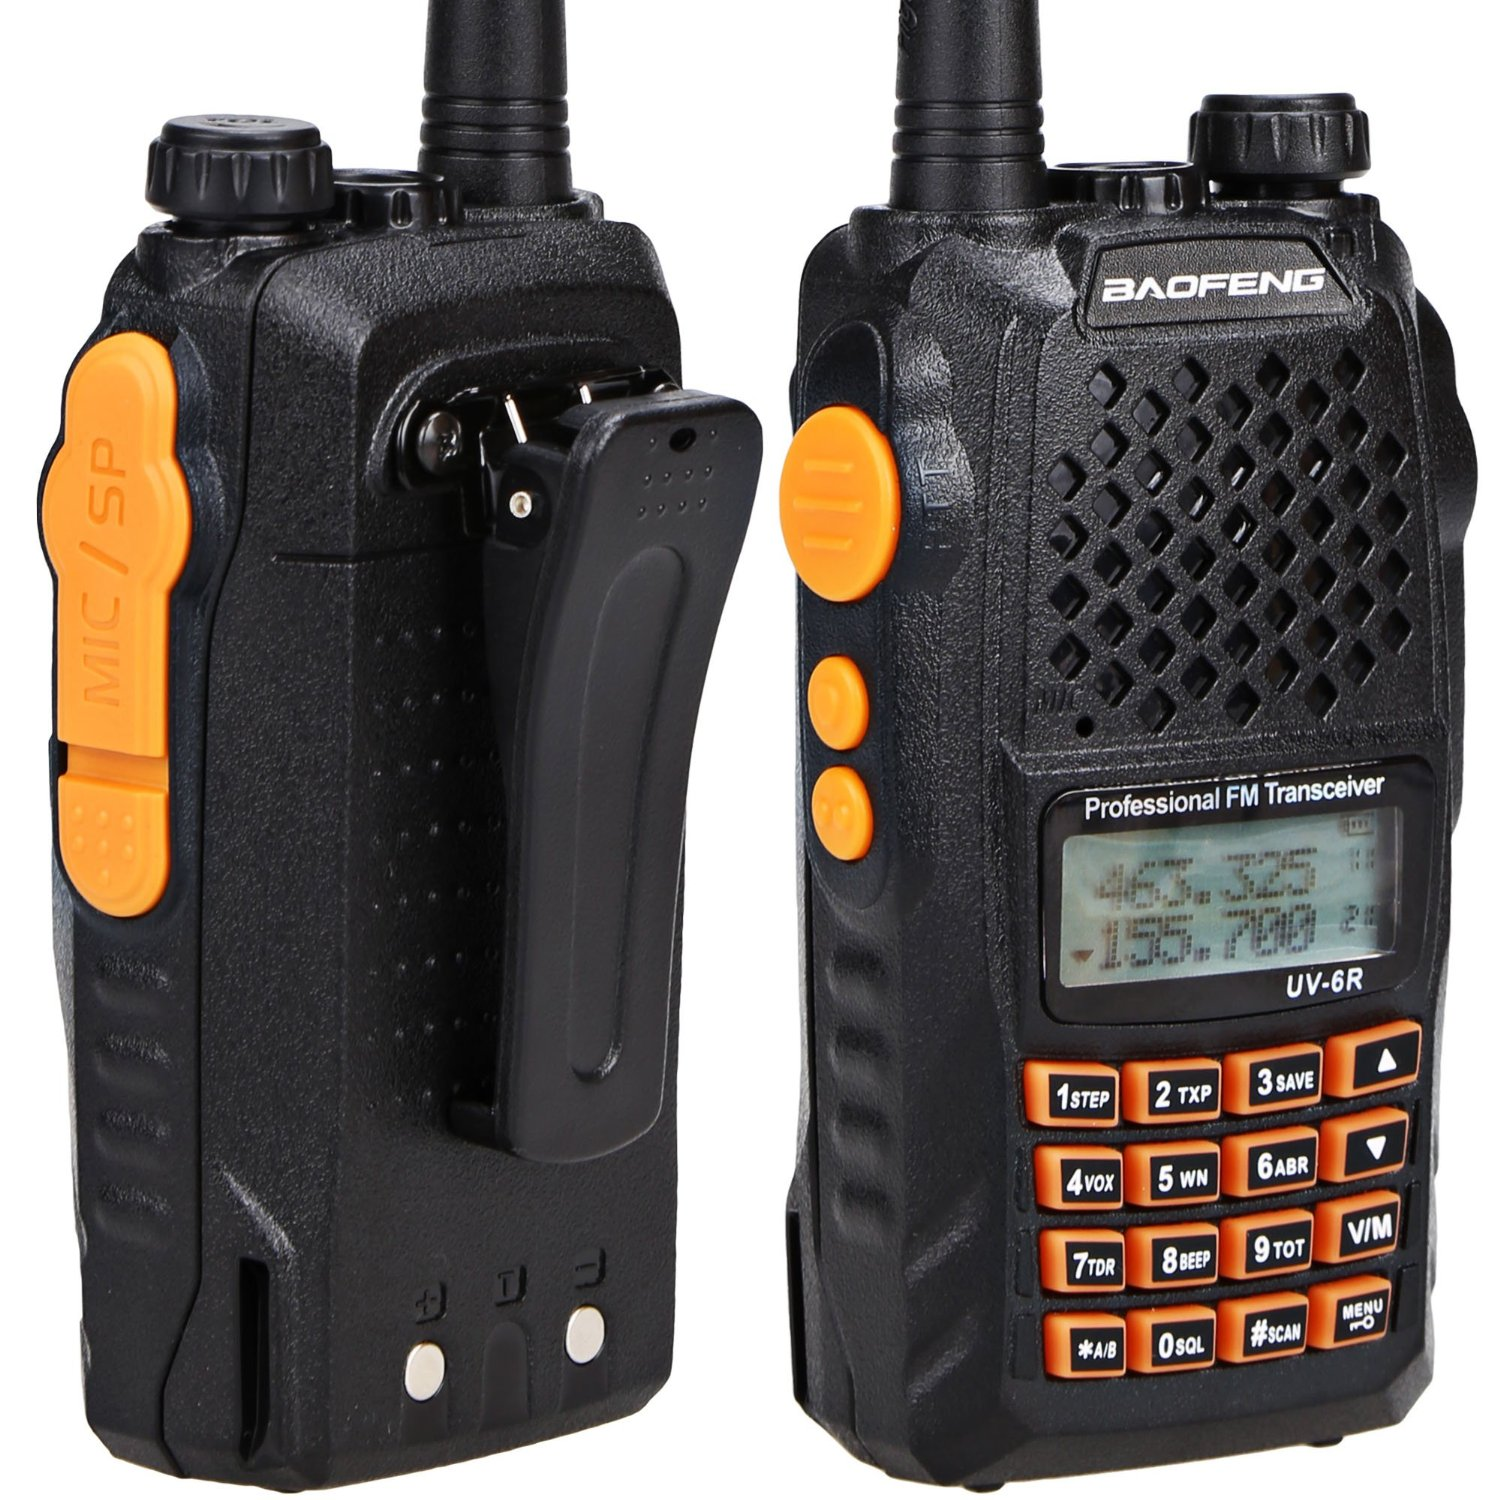 Baofeng UV-6R Two Way Radio